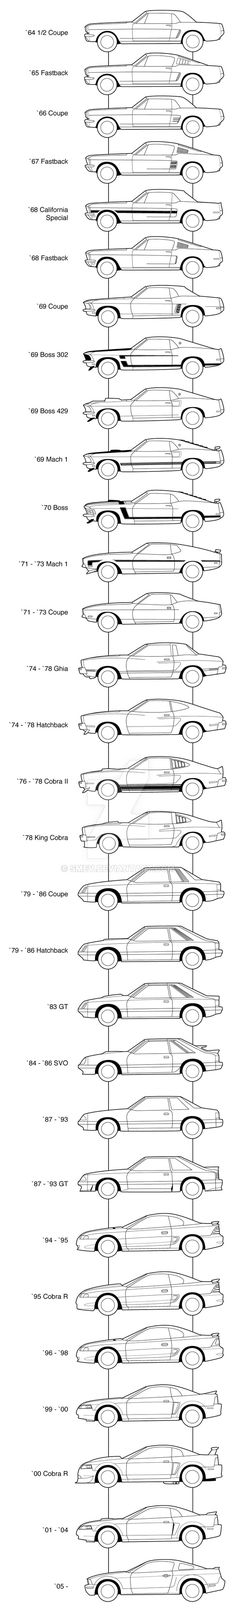 Cars Discover Mustang Guide by smev on DeviantArt Mustang Cobra, Mustang Fastback, Ford Mustang Gt, Blue Mustang, Mustang Bullitt, Porsche Cayman 987, Classic Mustang, Pony Car, Car Ford